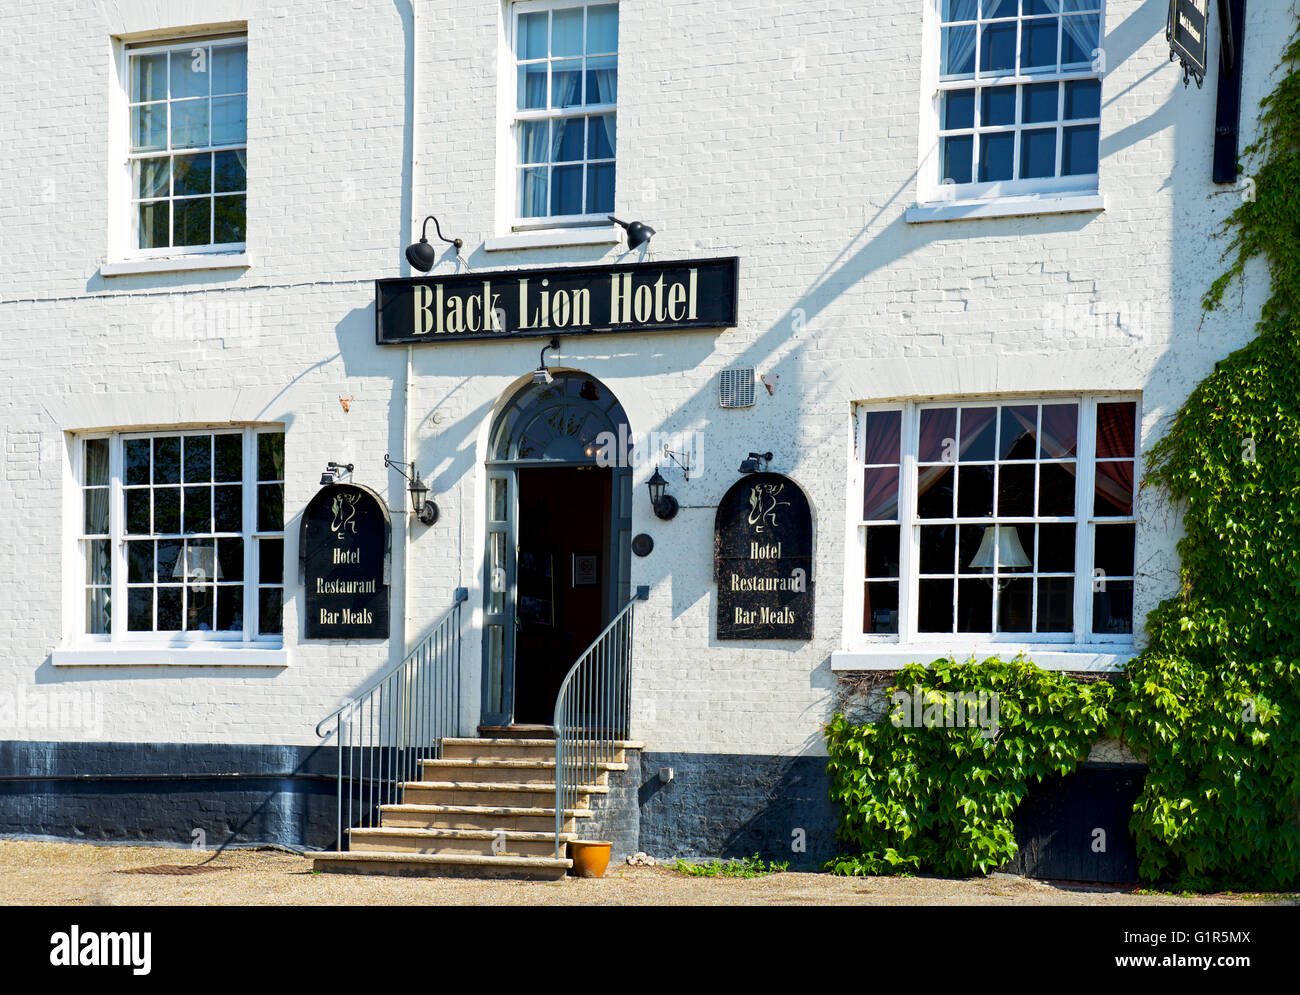 The Black Lion Hotel in the village of Long Melford, Suffolk, England UK - Stock Image